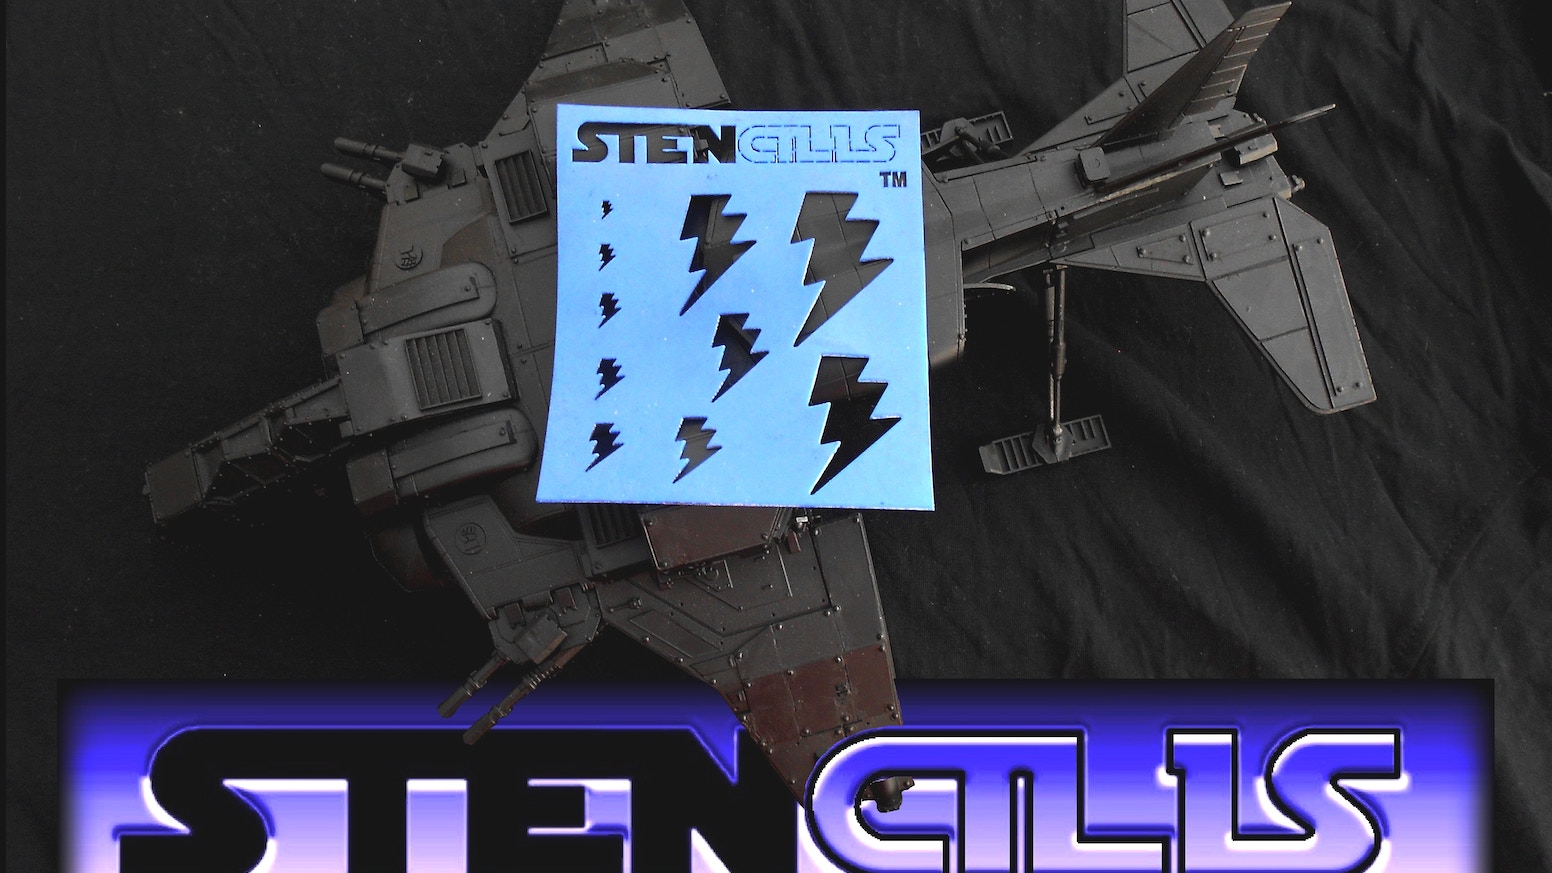 Flexible, Reusable & Robust Detailed Stencils: Spray, Sponge, Paint or Trace awesome scaled icons & patterns on wargames miniatures